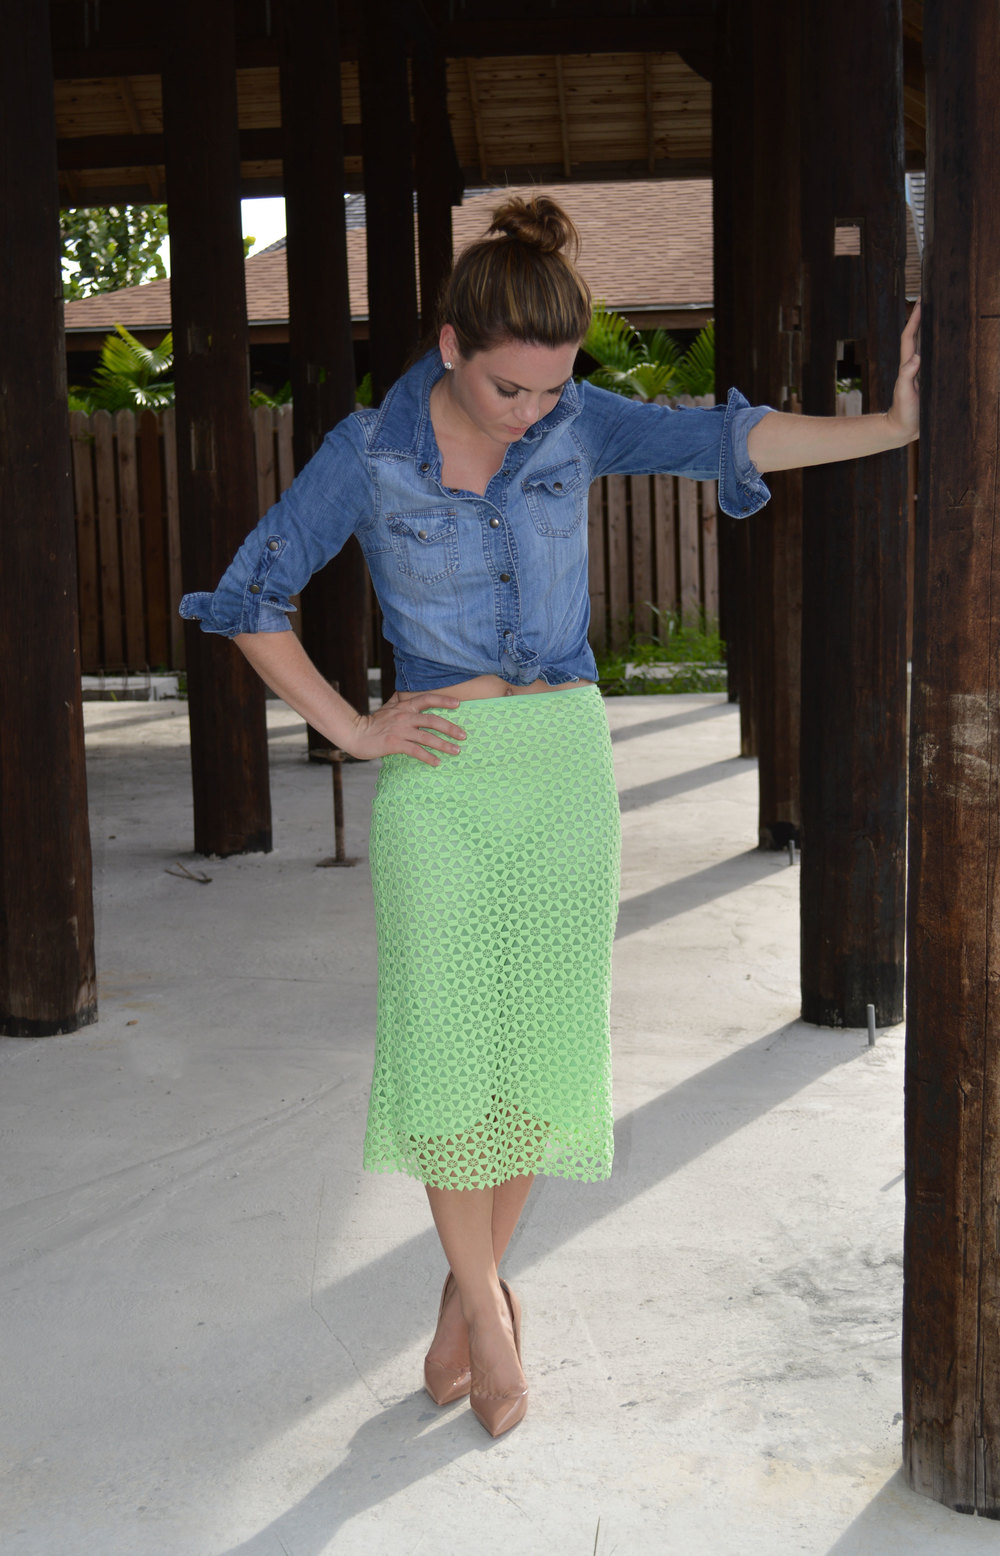 Denim-Button-forever21-Down-Zara-green-lace-Pencil-Skirt-FromCtoC-nassau-bahamas-lifestyle-style-fashion-blogger.jpeg